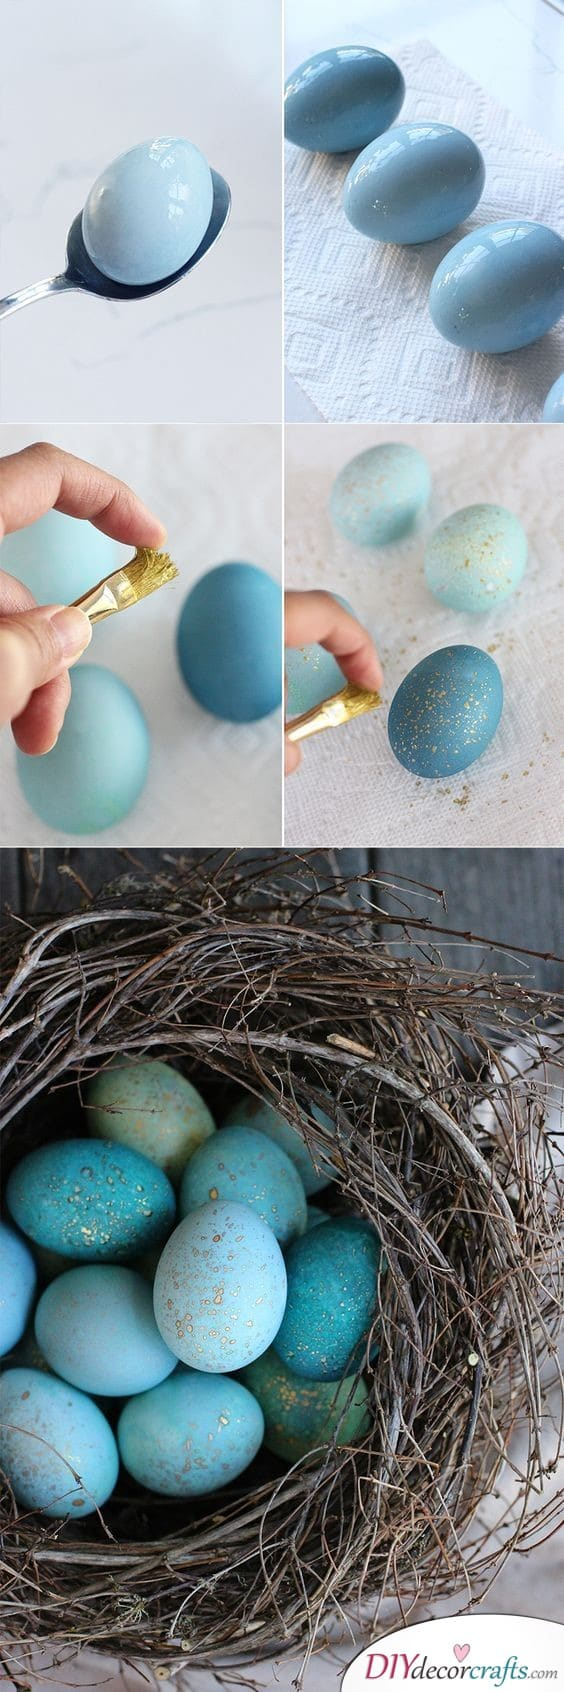 Robin Eggs - Beautiful and Blue